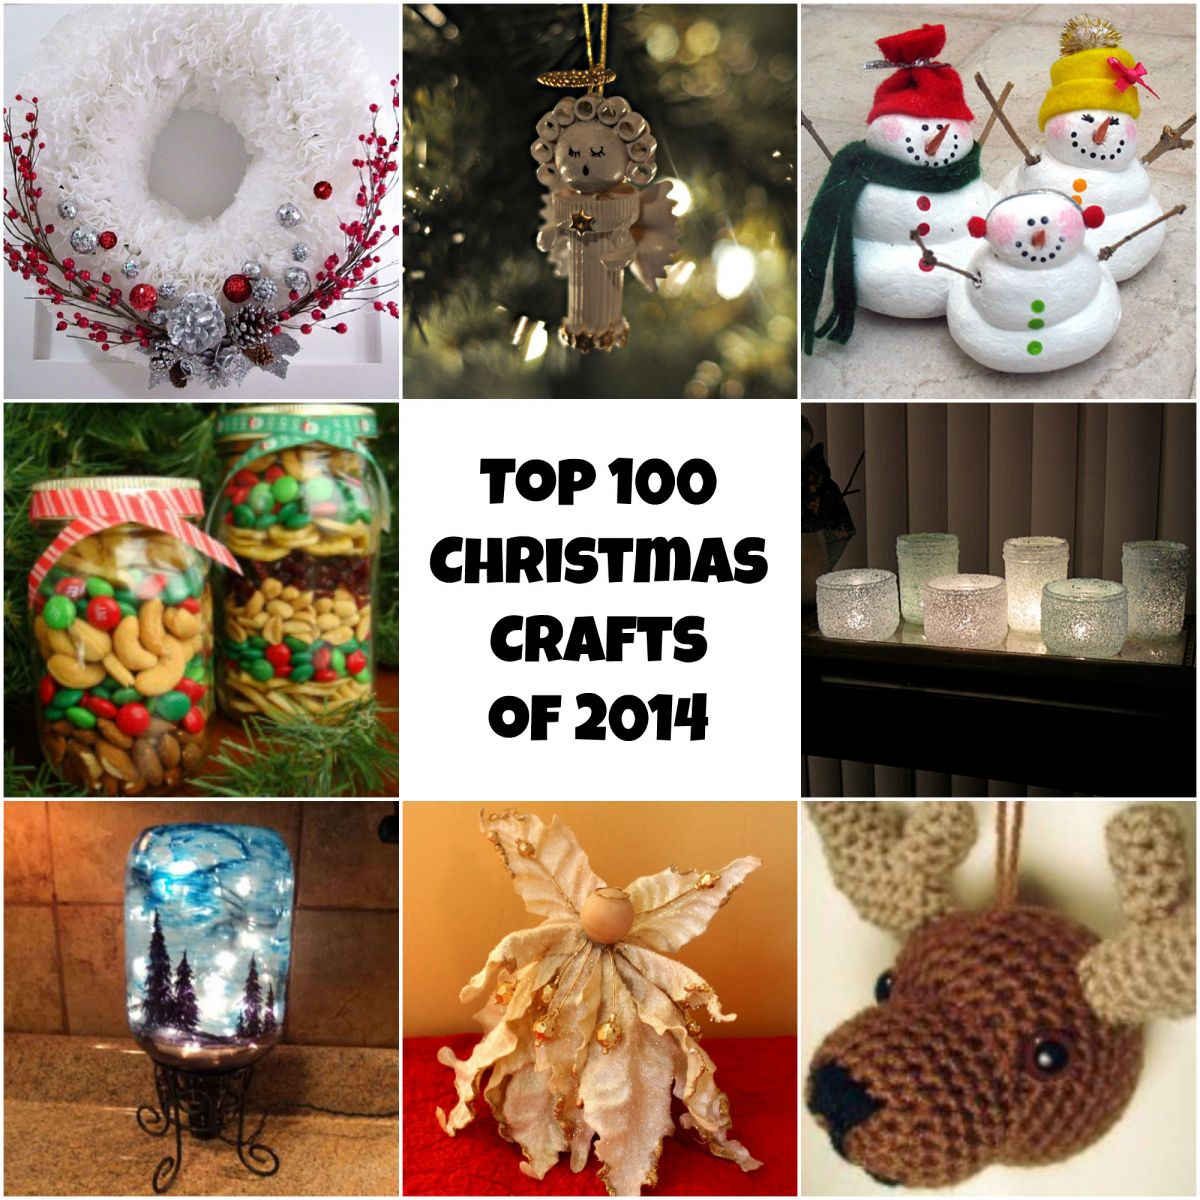 top 100 diy christmas crafts of 2014 homemade christmas ornaments top 100 diy christmas crafts of 2013 diy christmas ornaments homemade christmas decorations